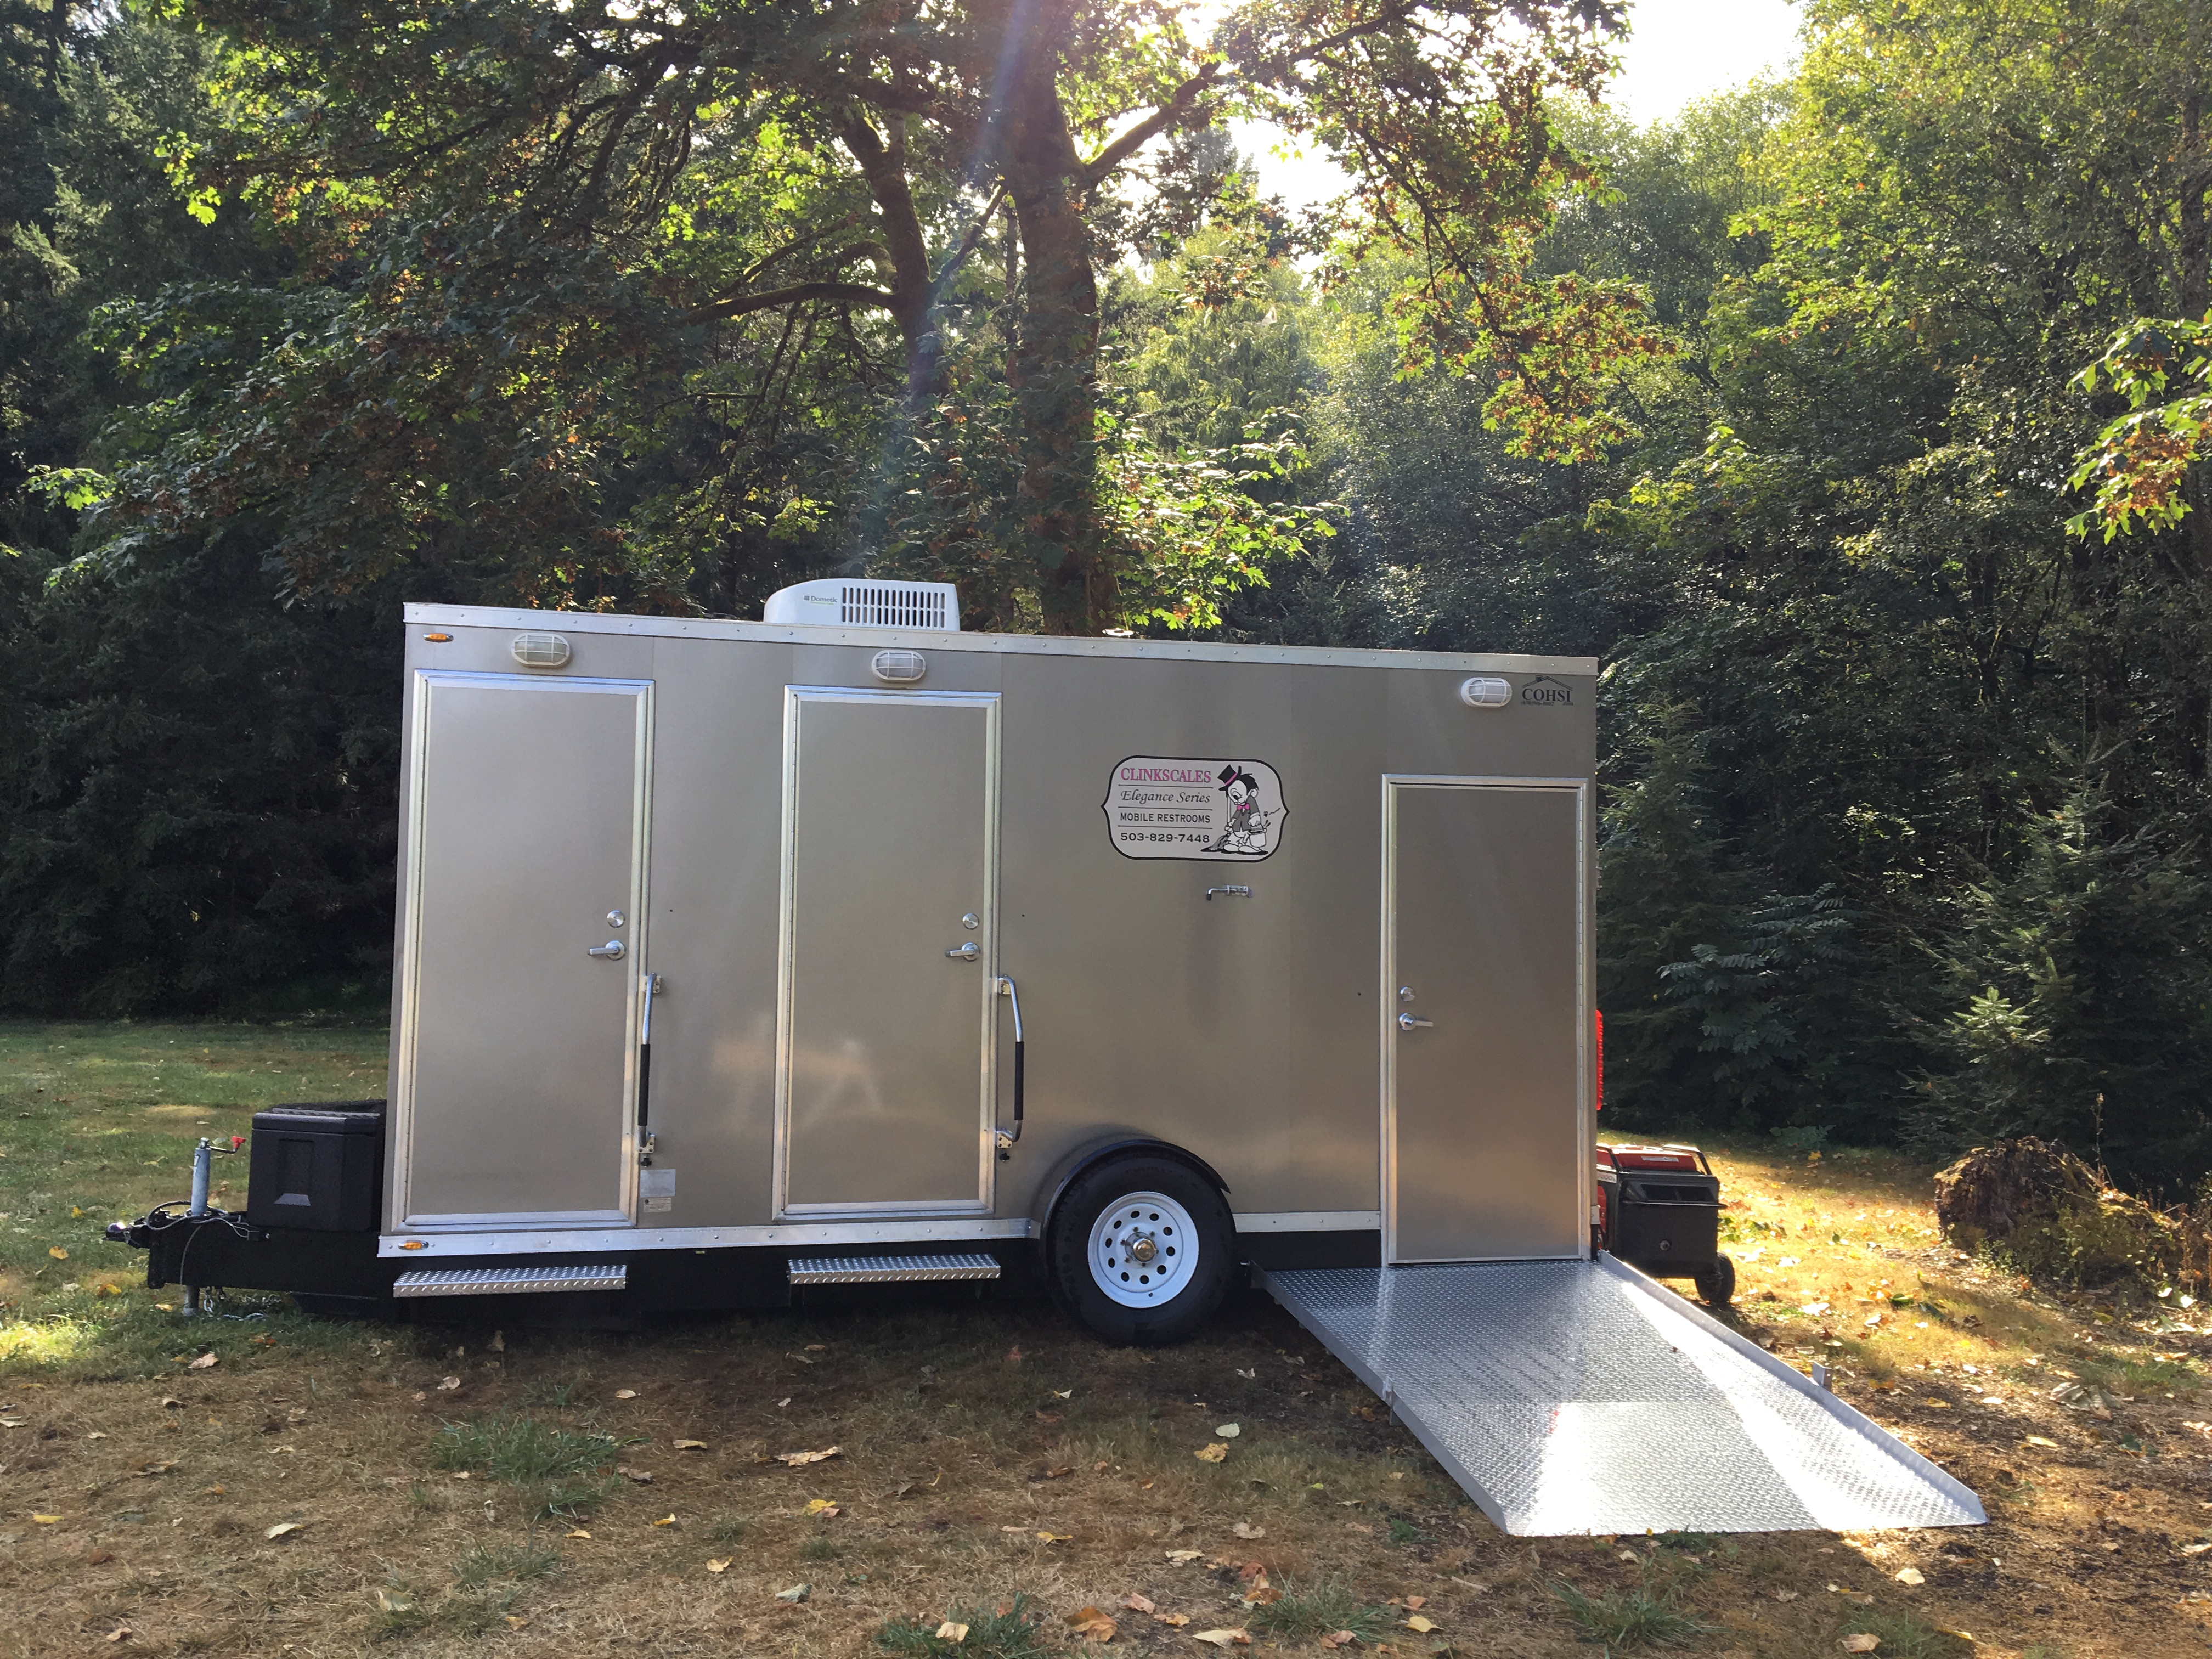 trailers a wedding location events rocket vip services luxury event special exterior restroom trailer portable bathroom wide on and